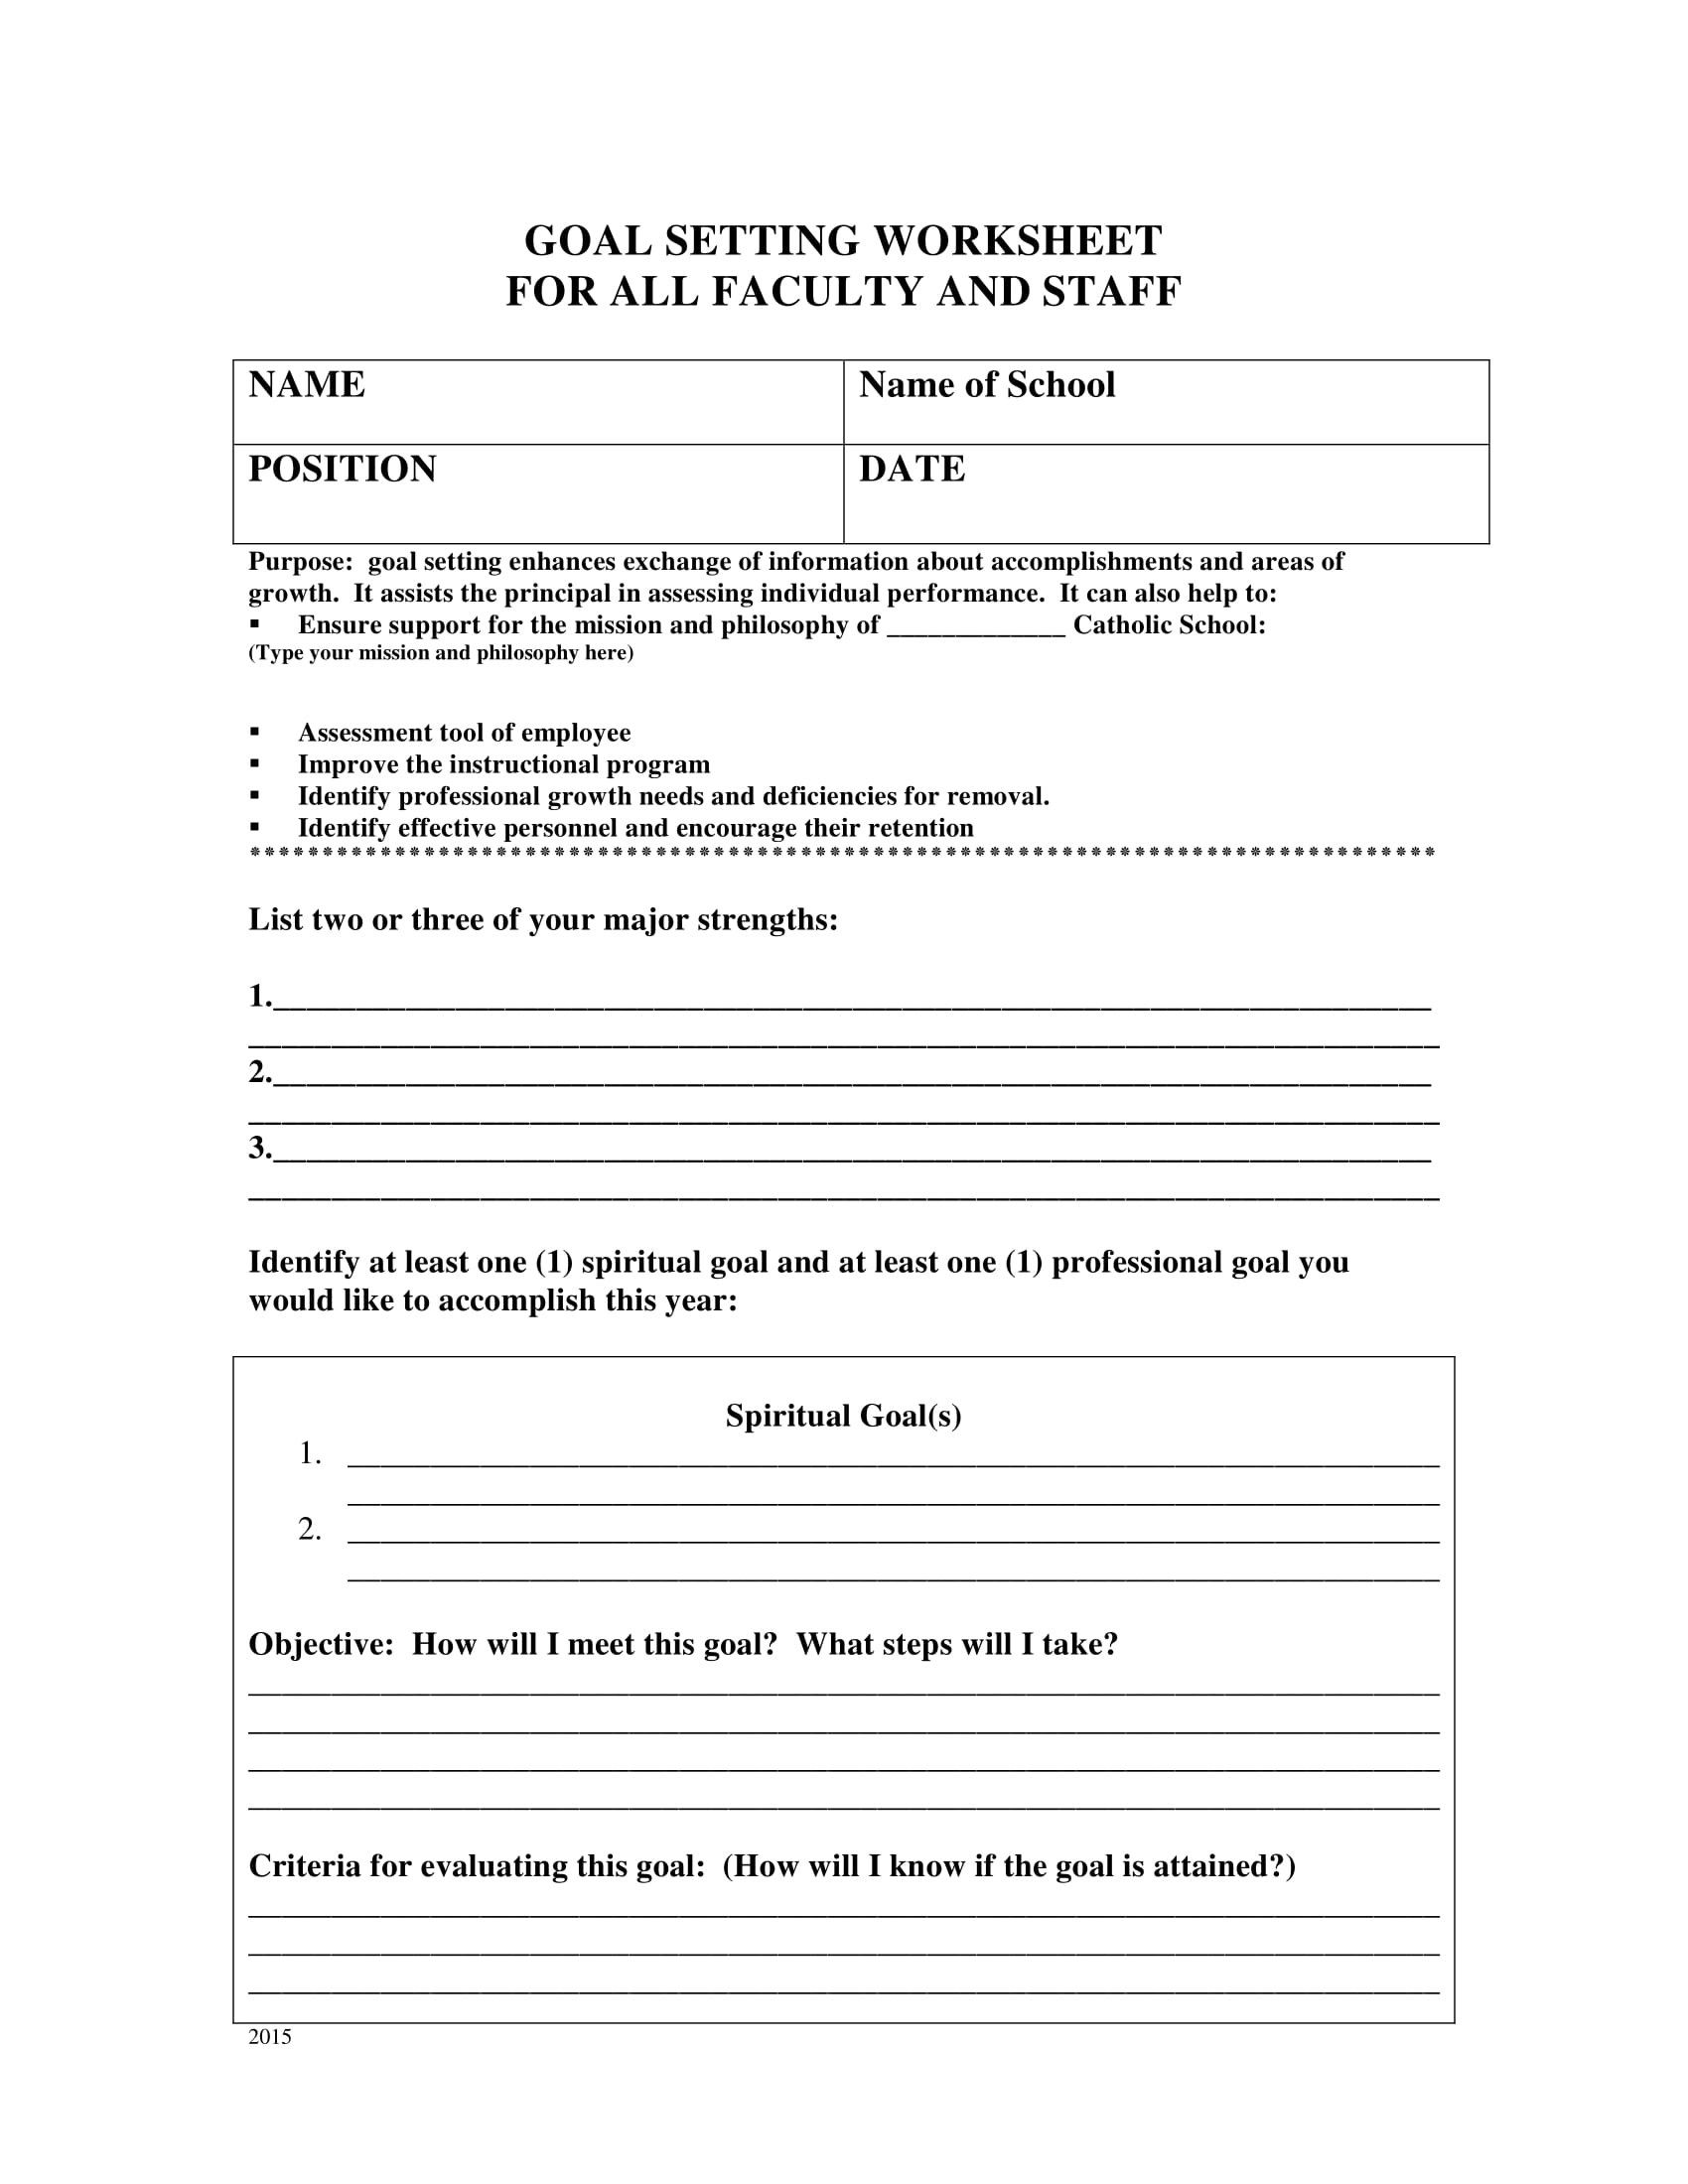 Faculty And Staff Goal Setting Worksheet Example